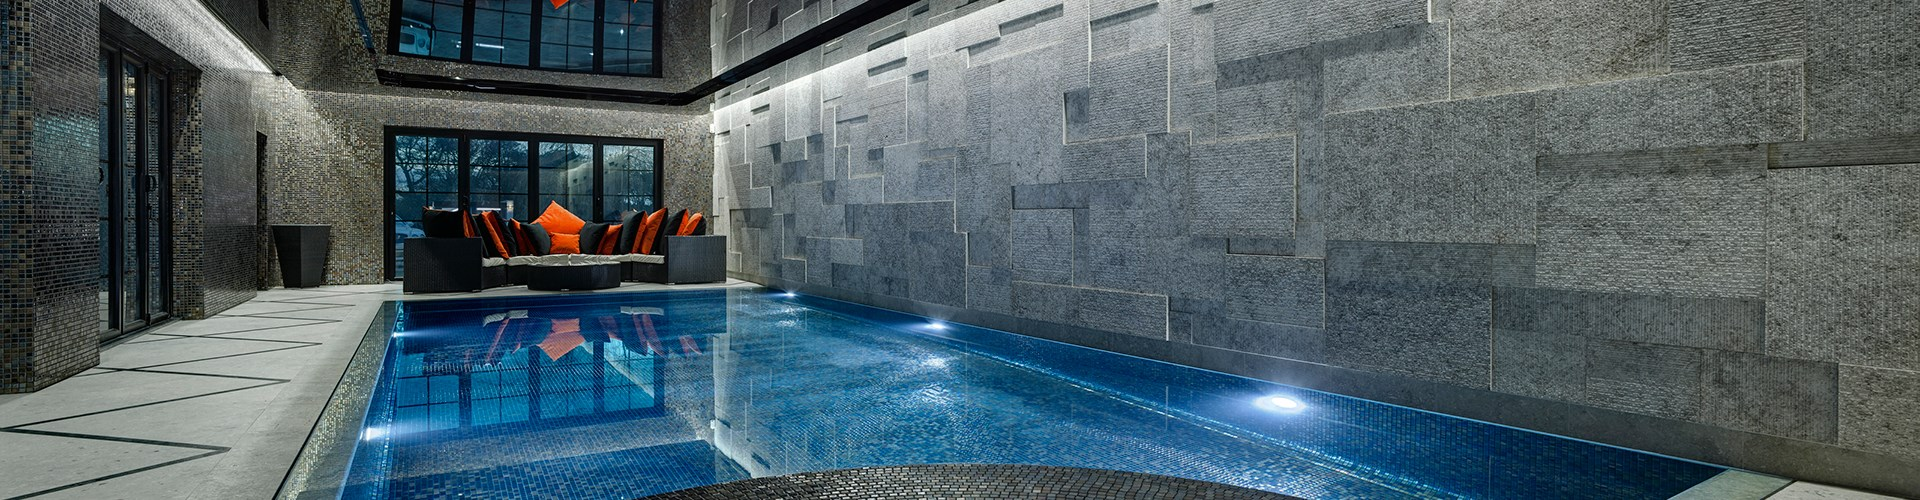 designworks-tiles-pool-mosaics-cocktail-alexander-pool.jpg